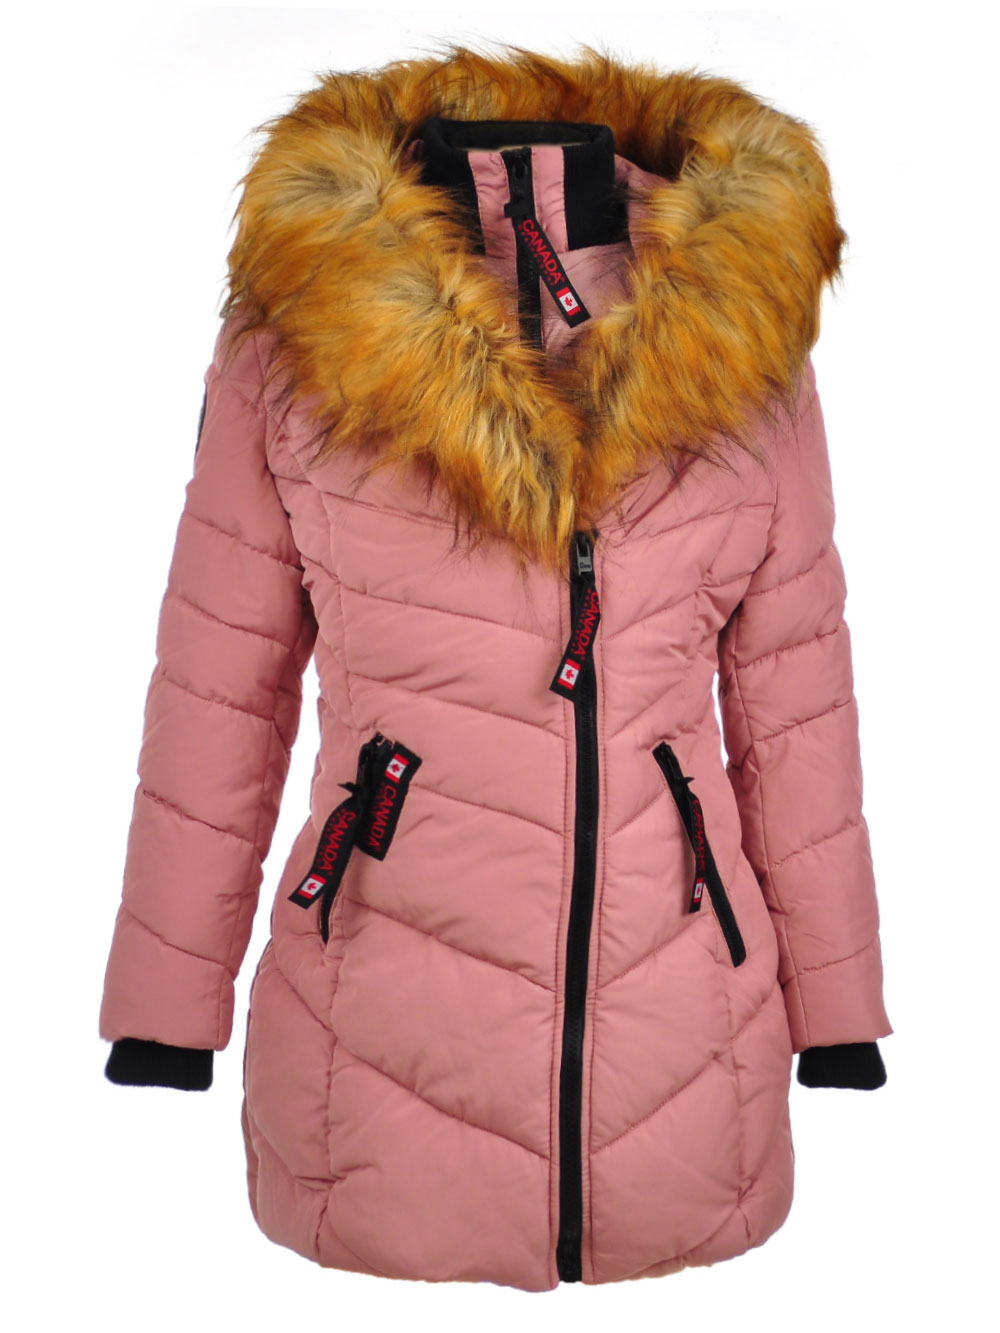 Girls Dusty Rose Jackets and Coats